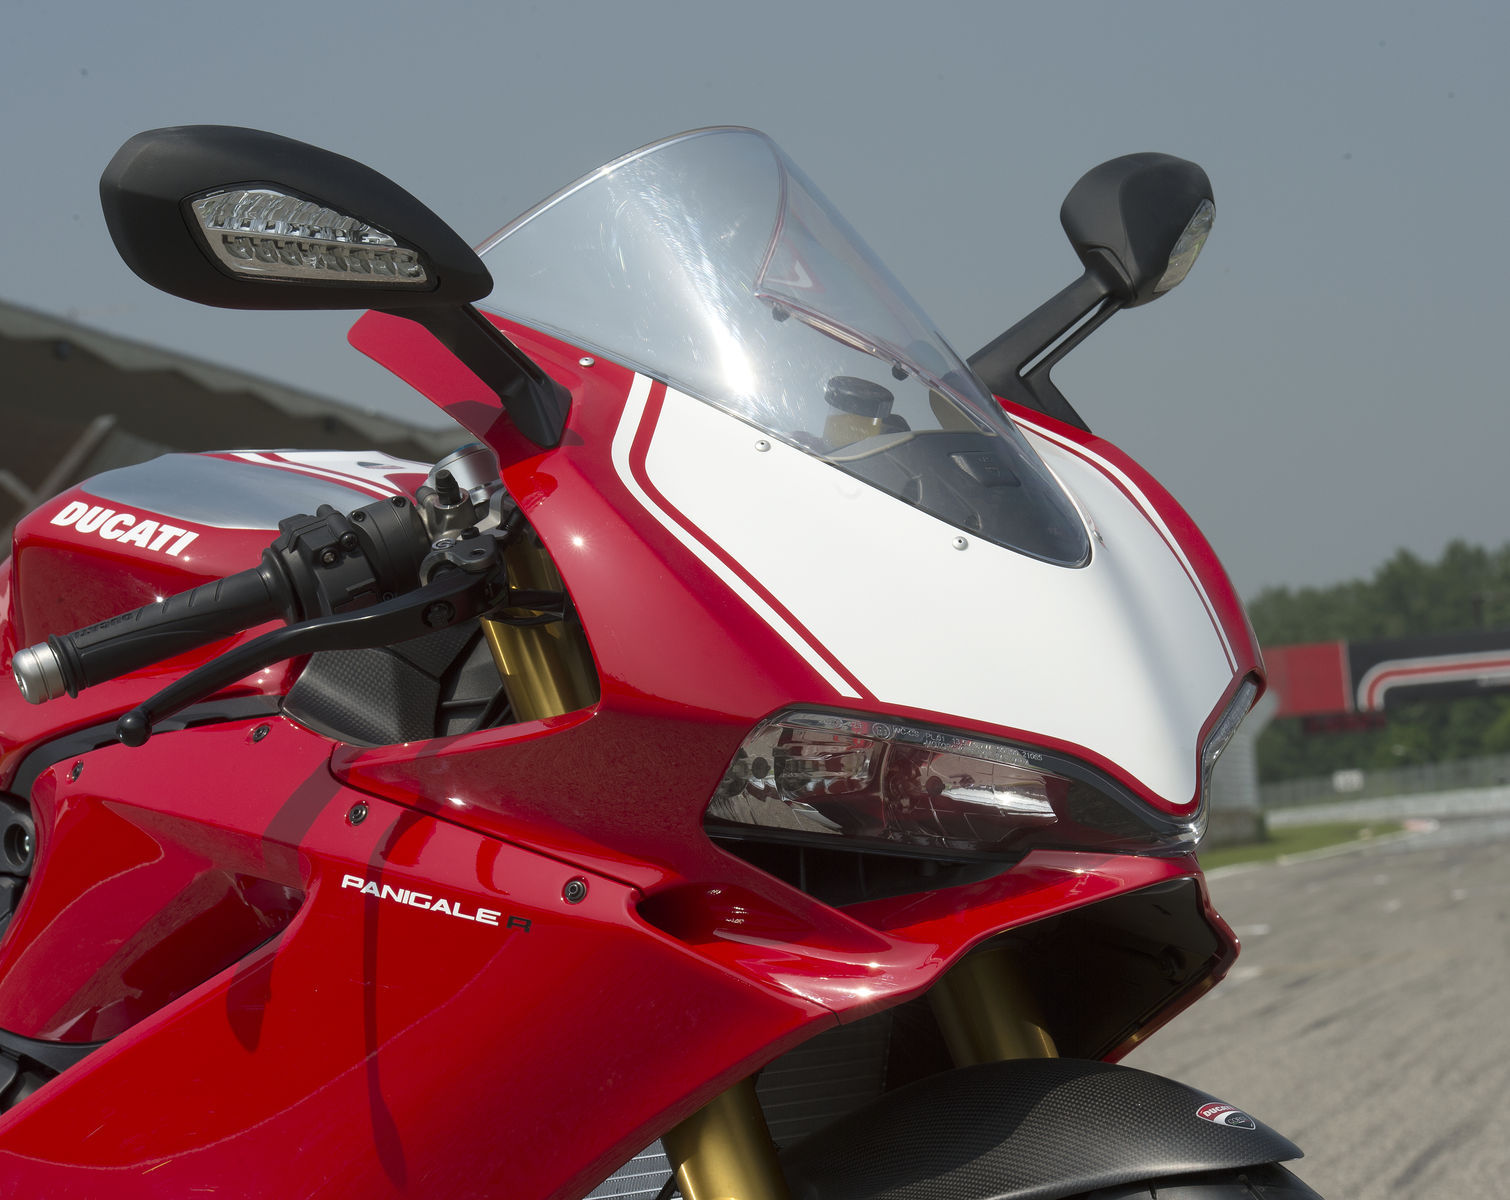 2016 Ducati Panigale R | Panigale R - Headlights